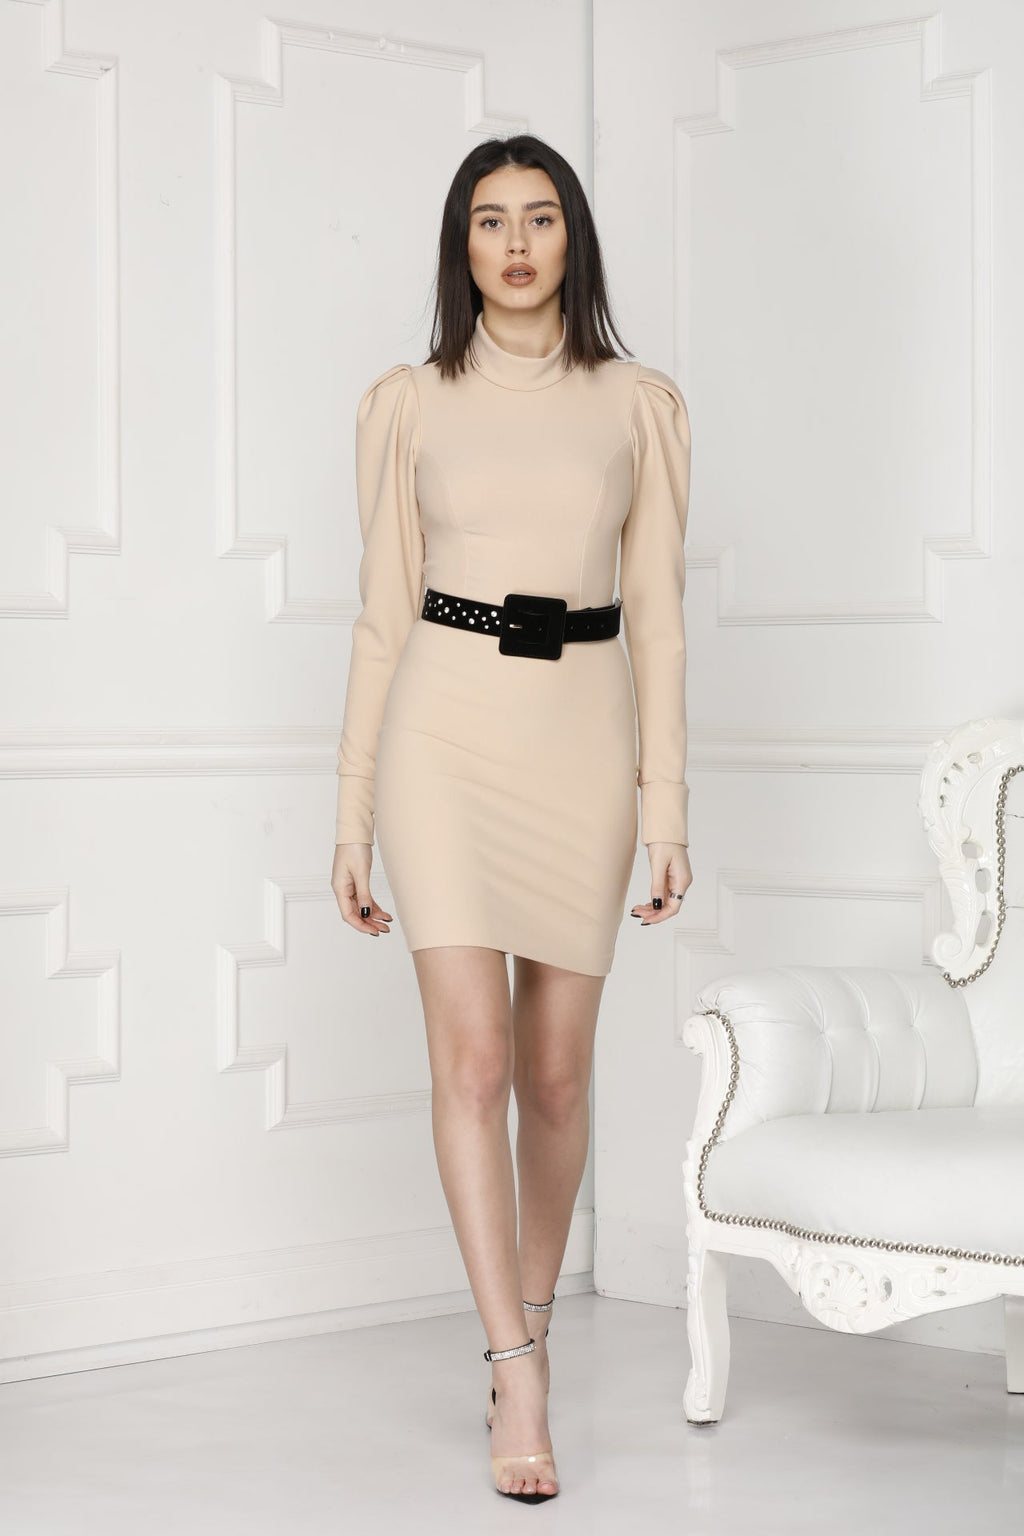 Adela Nude mini dress full details.